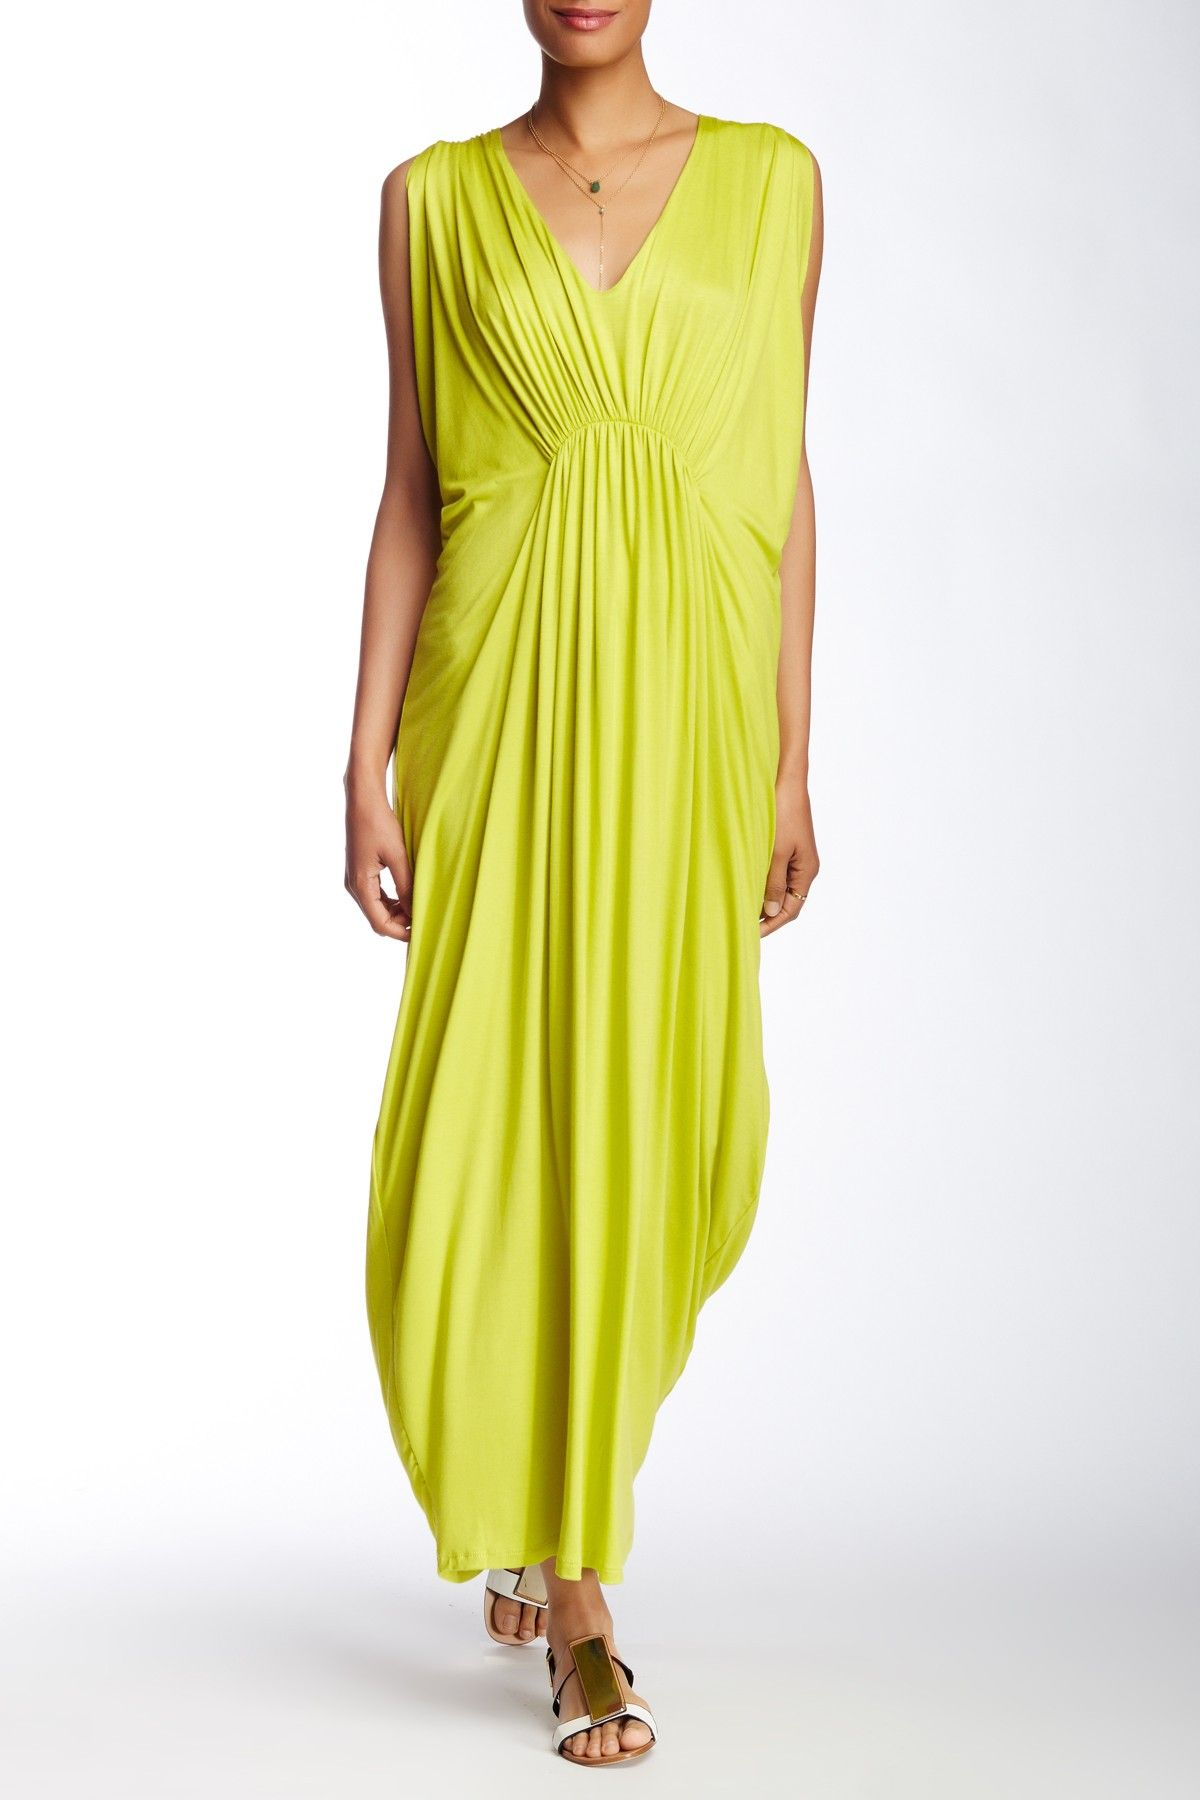 586ae3c0363 Grecian Maxi Dress by S.H.E. on  nordstrom rack